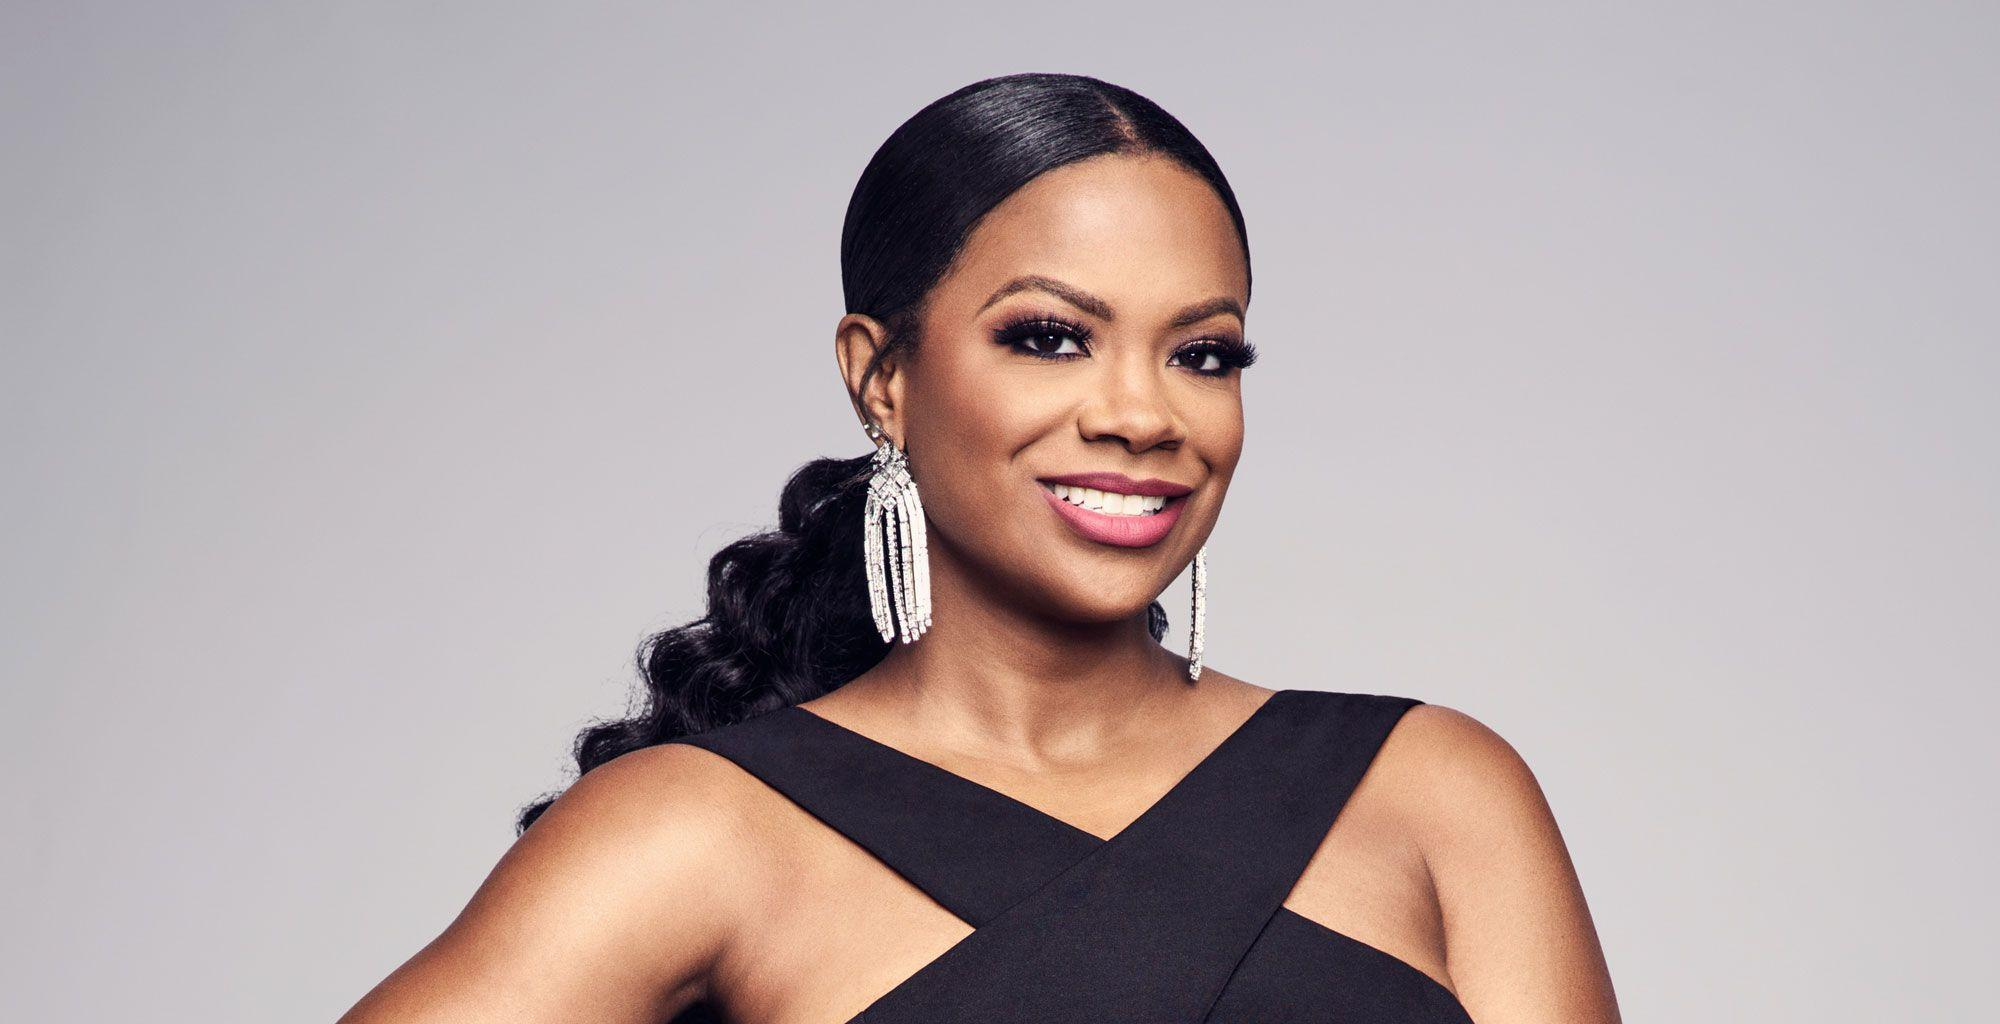 Kandi Burruss Is Featured In The Fall Issue Of 'Hello Beautiful' Magazine